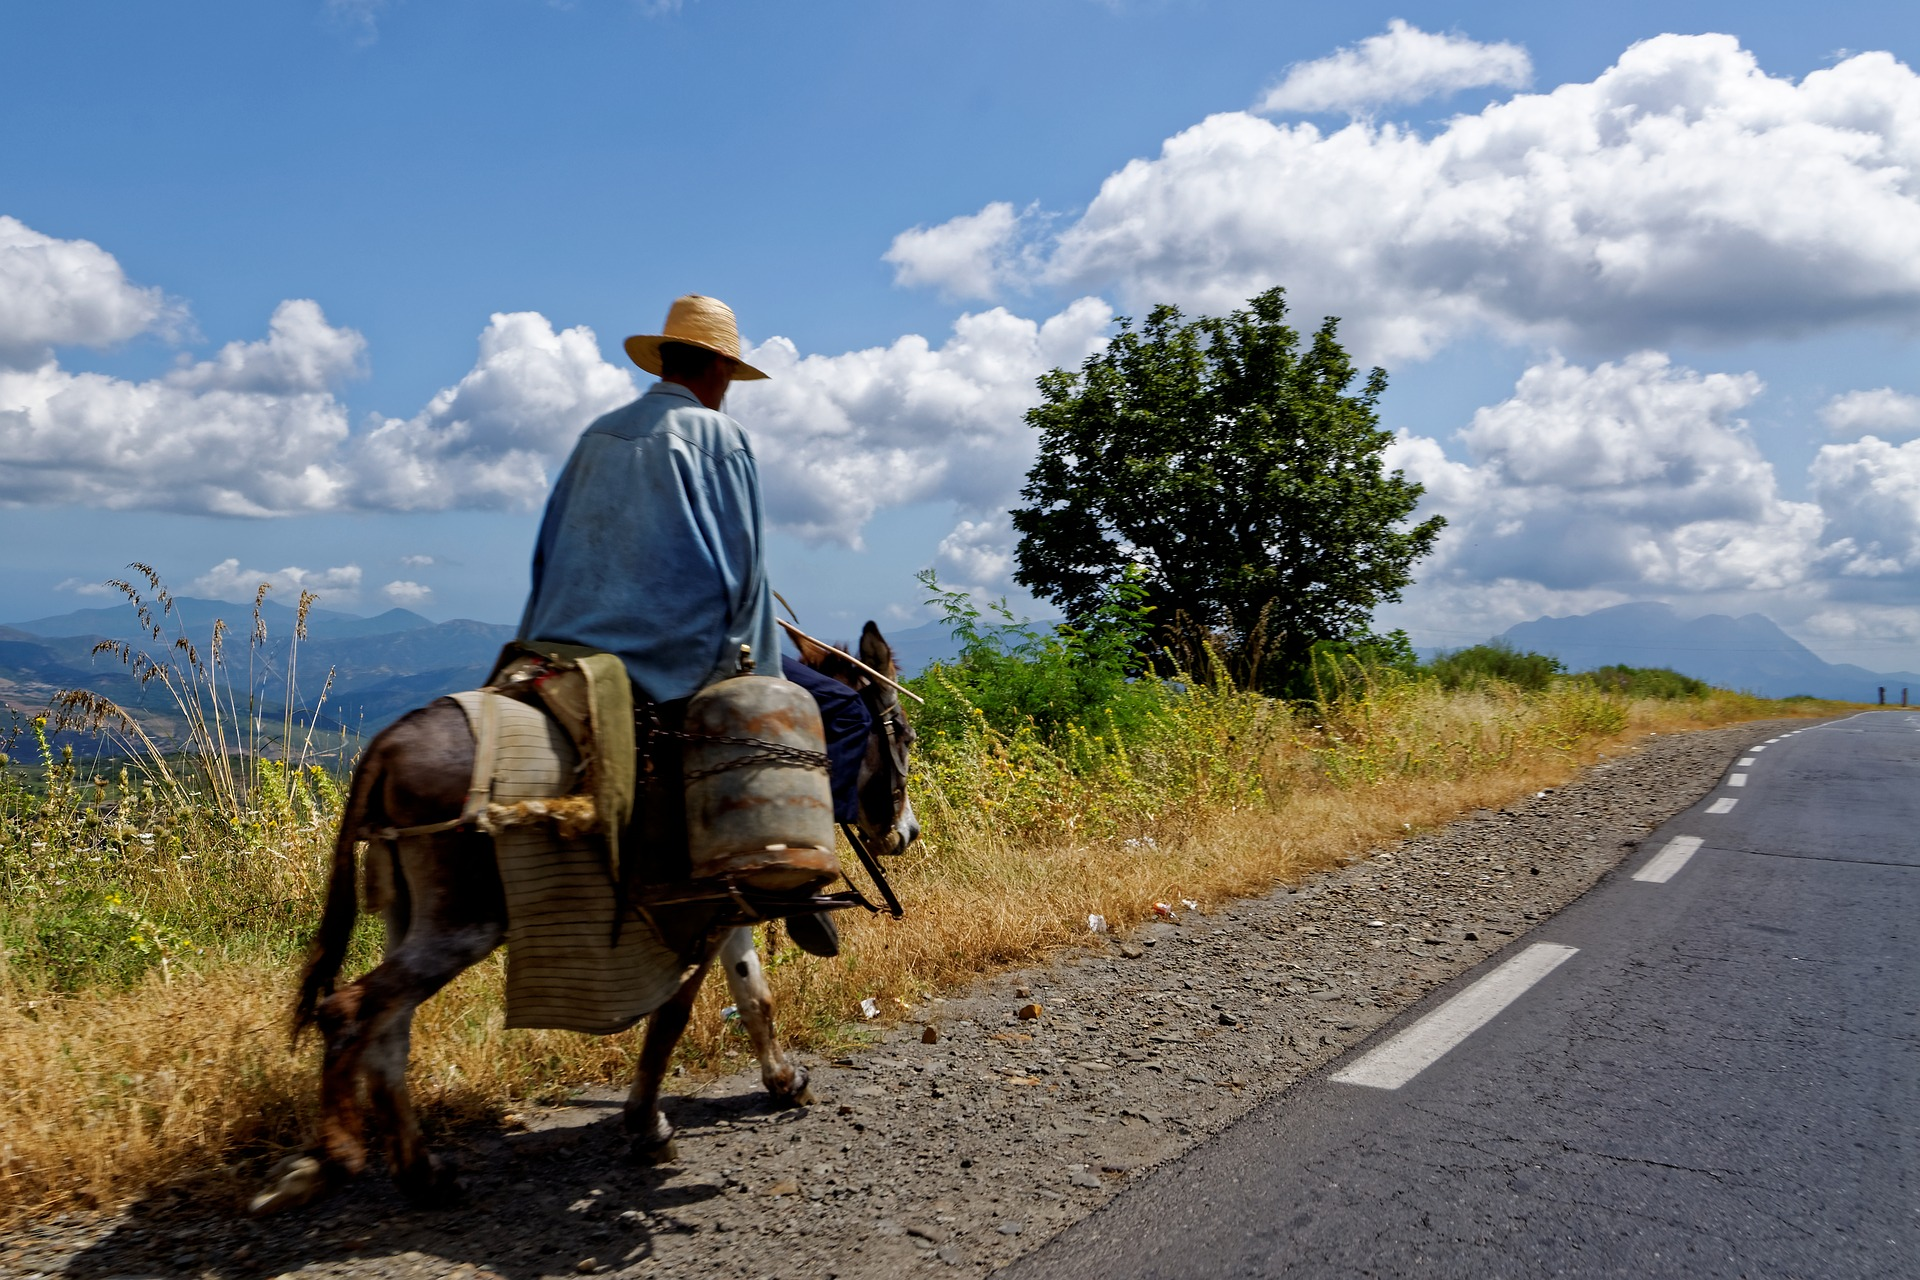 Person riding a donkey on the side of a asphalt road with mountains in the distance